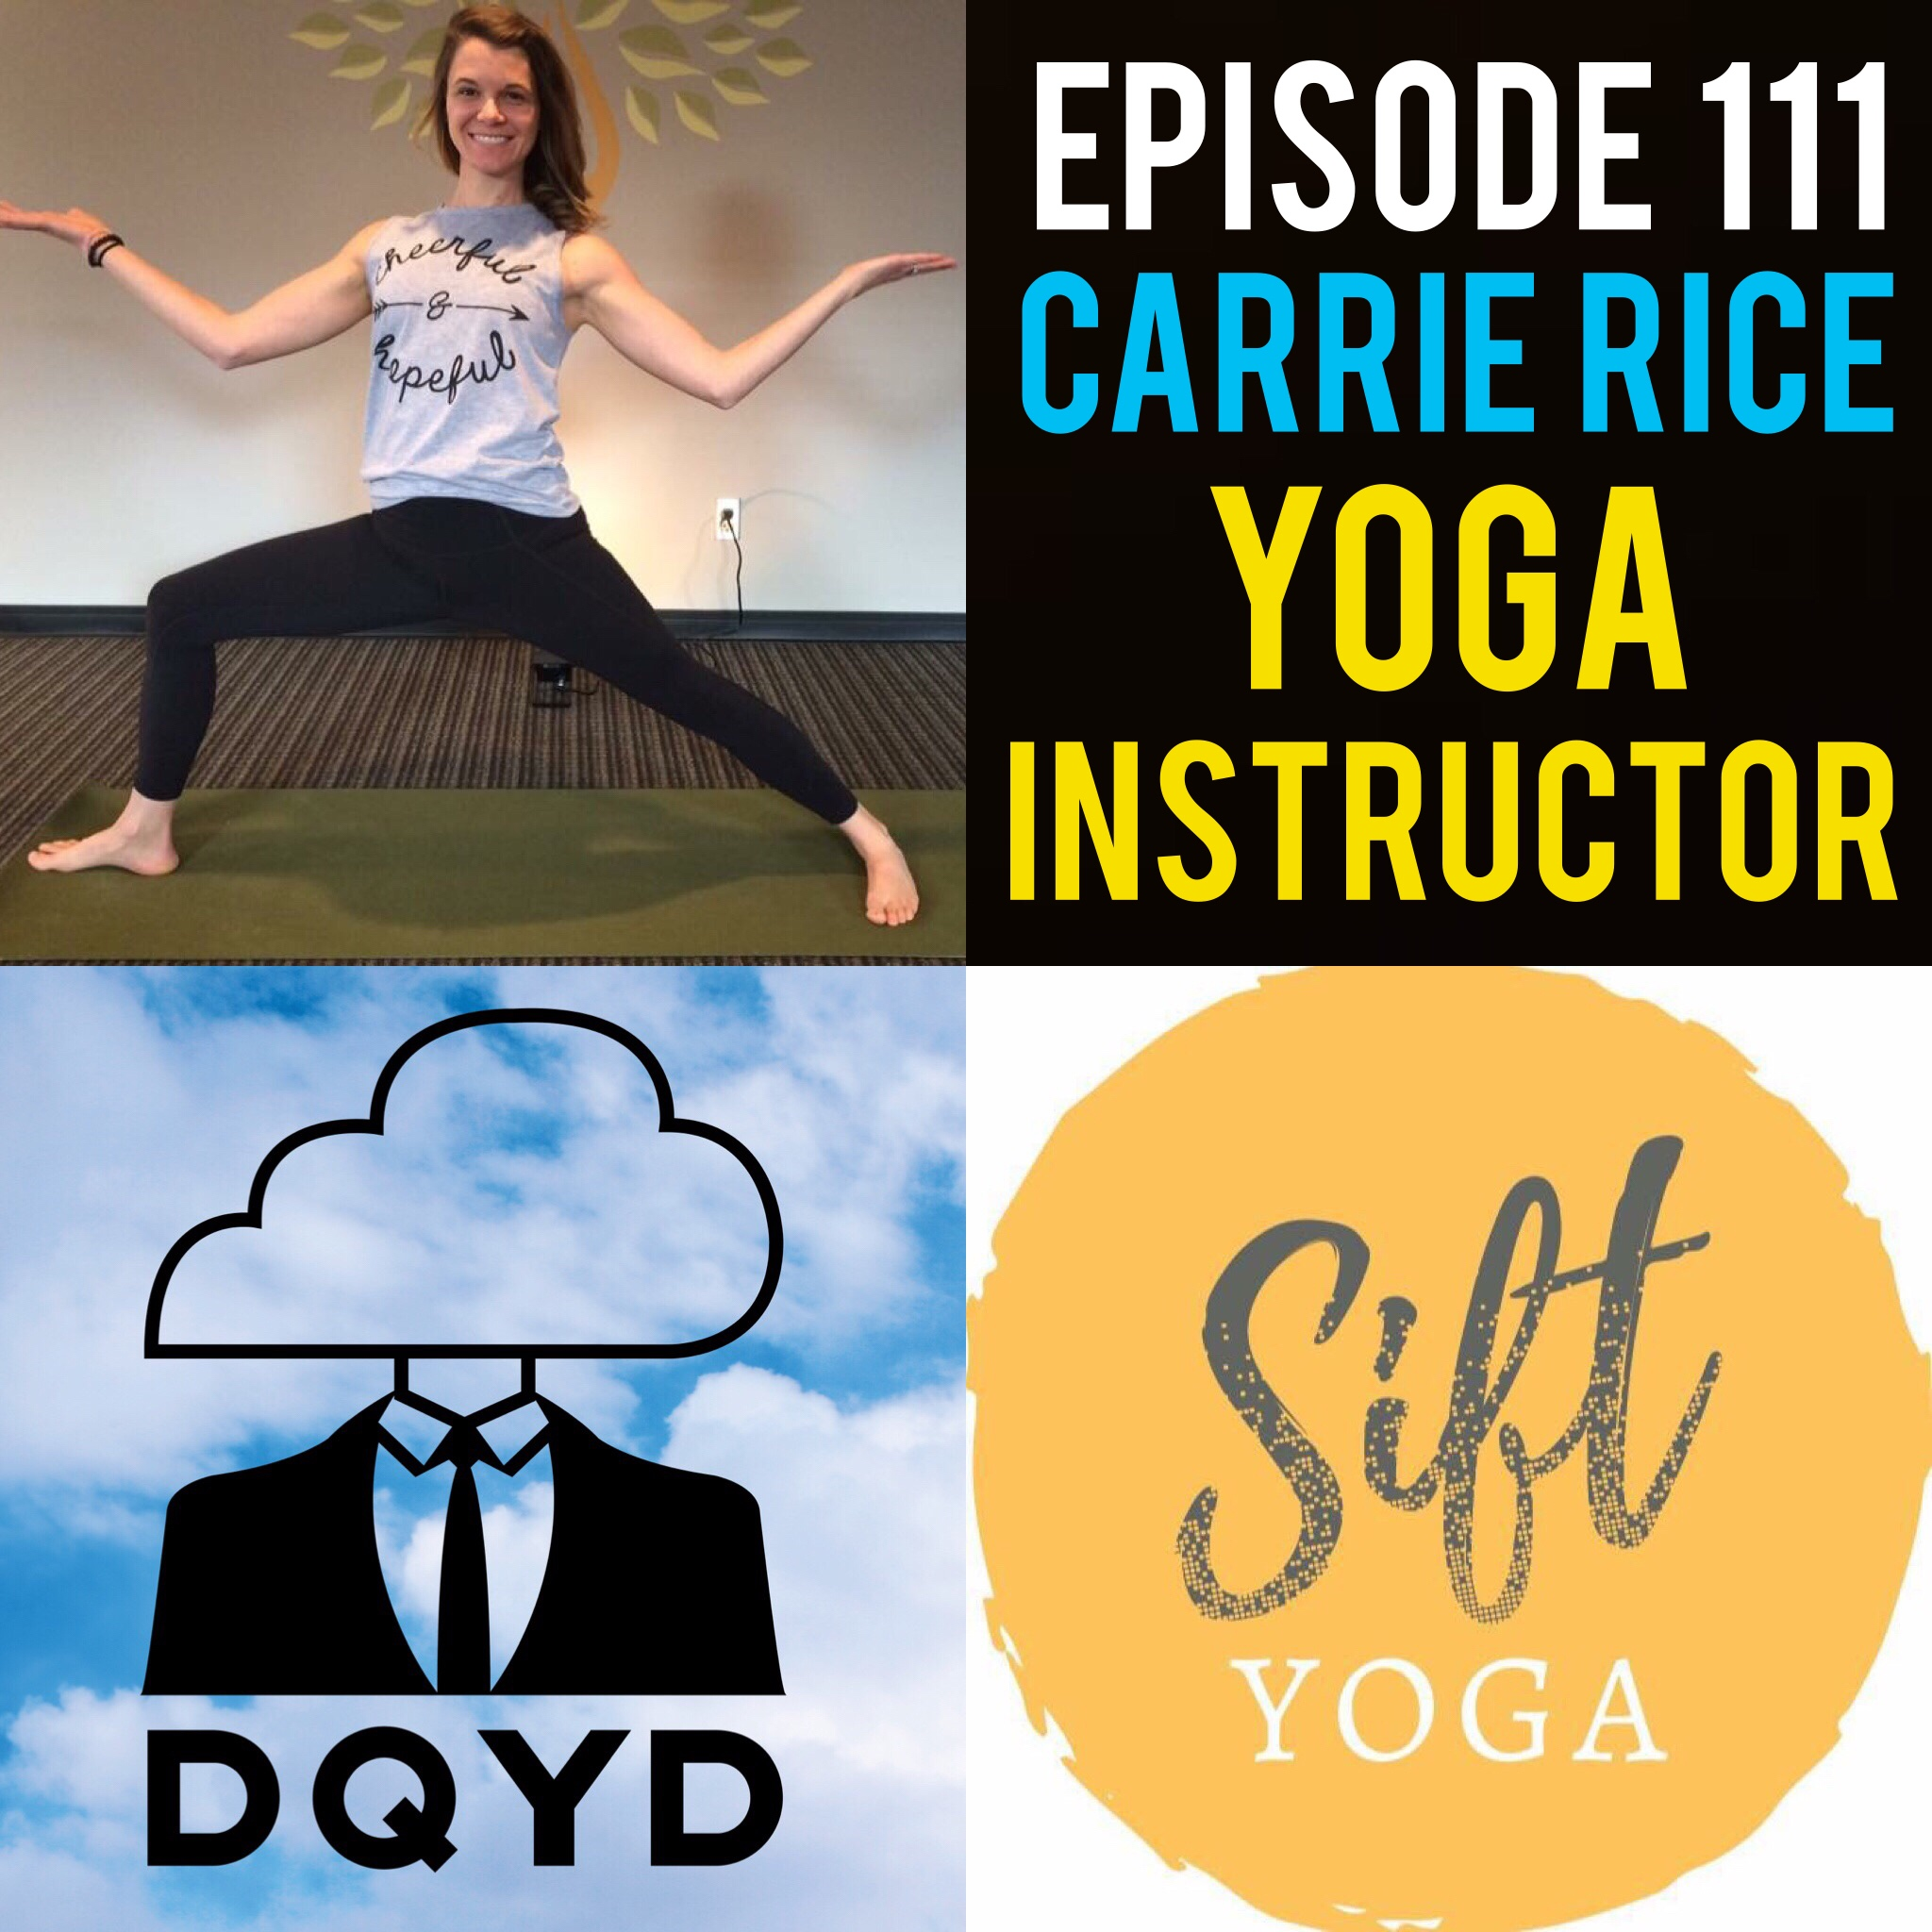 "Episode 111 with Yoga Instructor: Carrie Rice! Owner of Sift Yoga, Carrie encourages yoga practitioners of all ages to take a moment out of their ever-busy lives to reflect and appreciate their life. We talk about the beginning trials of entrepreneurship and how her studio stands out and develops its own community.  Song of the week is ""Candid"" my Murphy's Horizon! Check him out! https://soundcloud.com/murphyseventhorizon/albums"